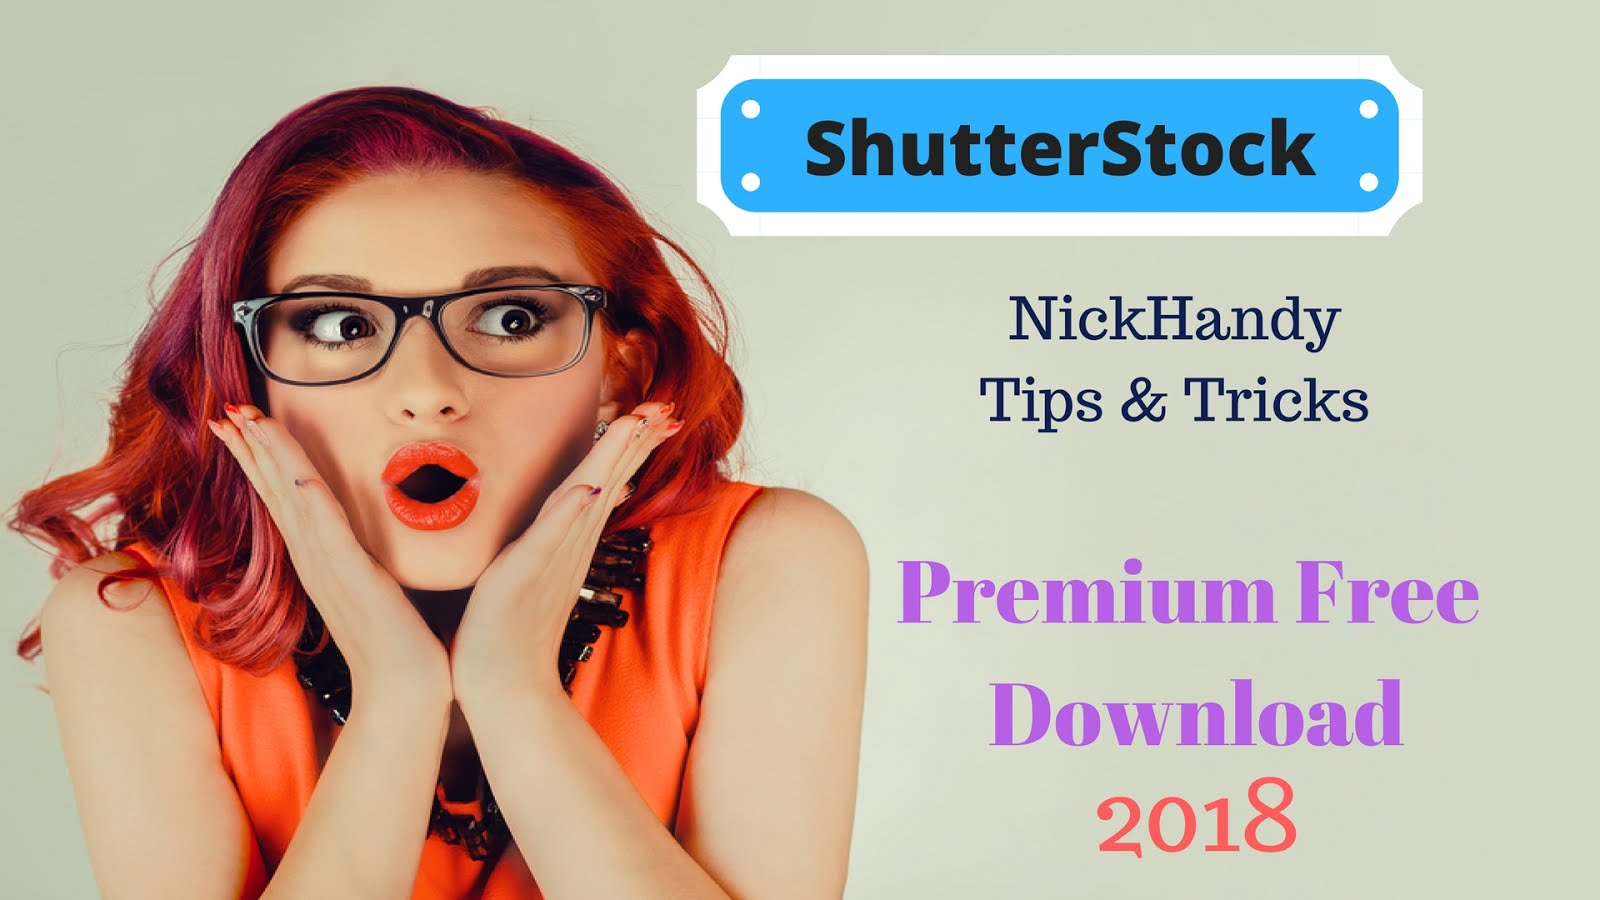 Download ShutterStock Images for Free | Nick Handy Tips and tricks